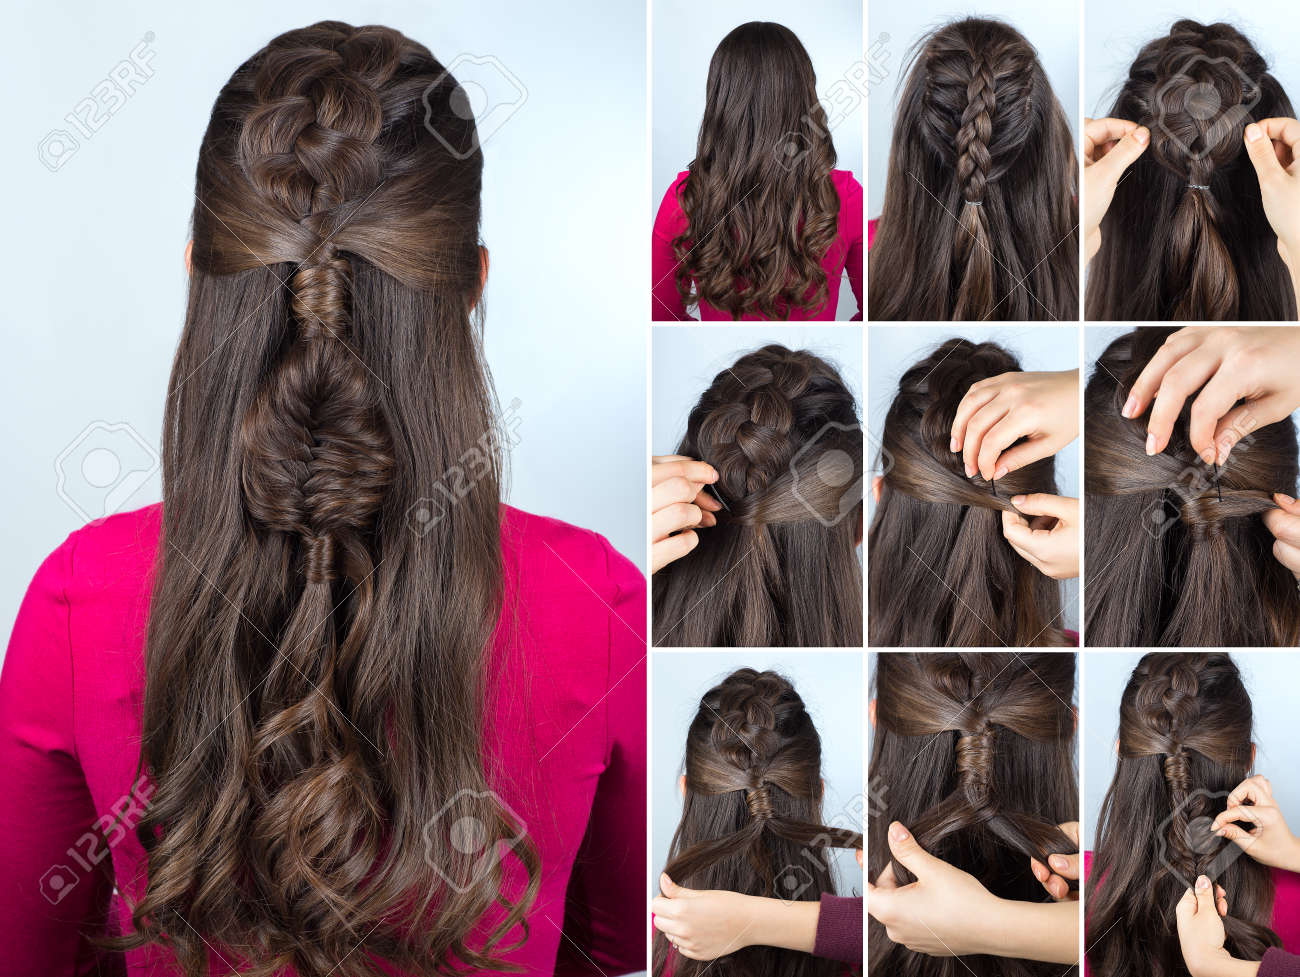 Modern Hairstyle Boho Braid With Curly Loose Hair Hairstyle Stock